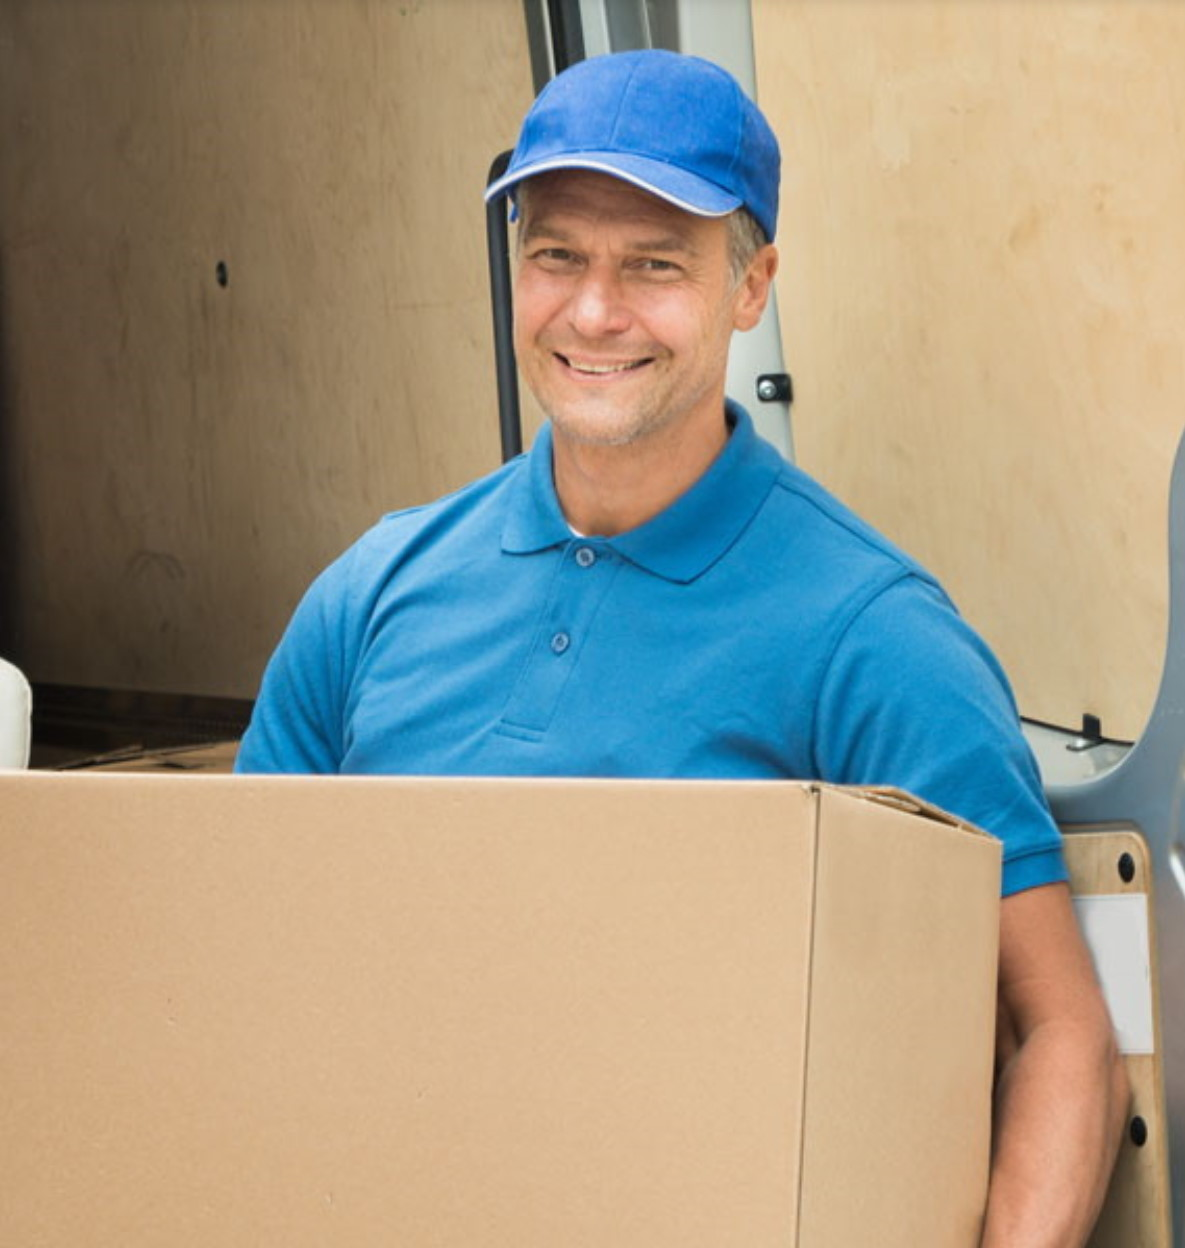 Ocala Movers - Movers Ocala FL - Ocala Florida Moving Company - Pardee Moving & Storage